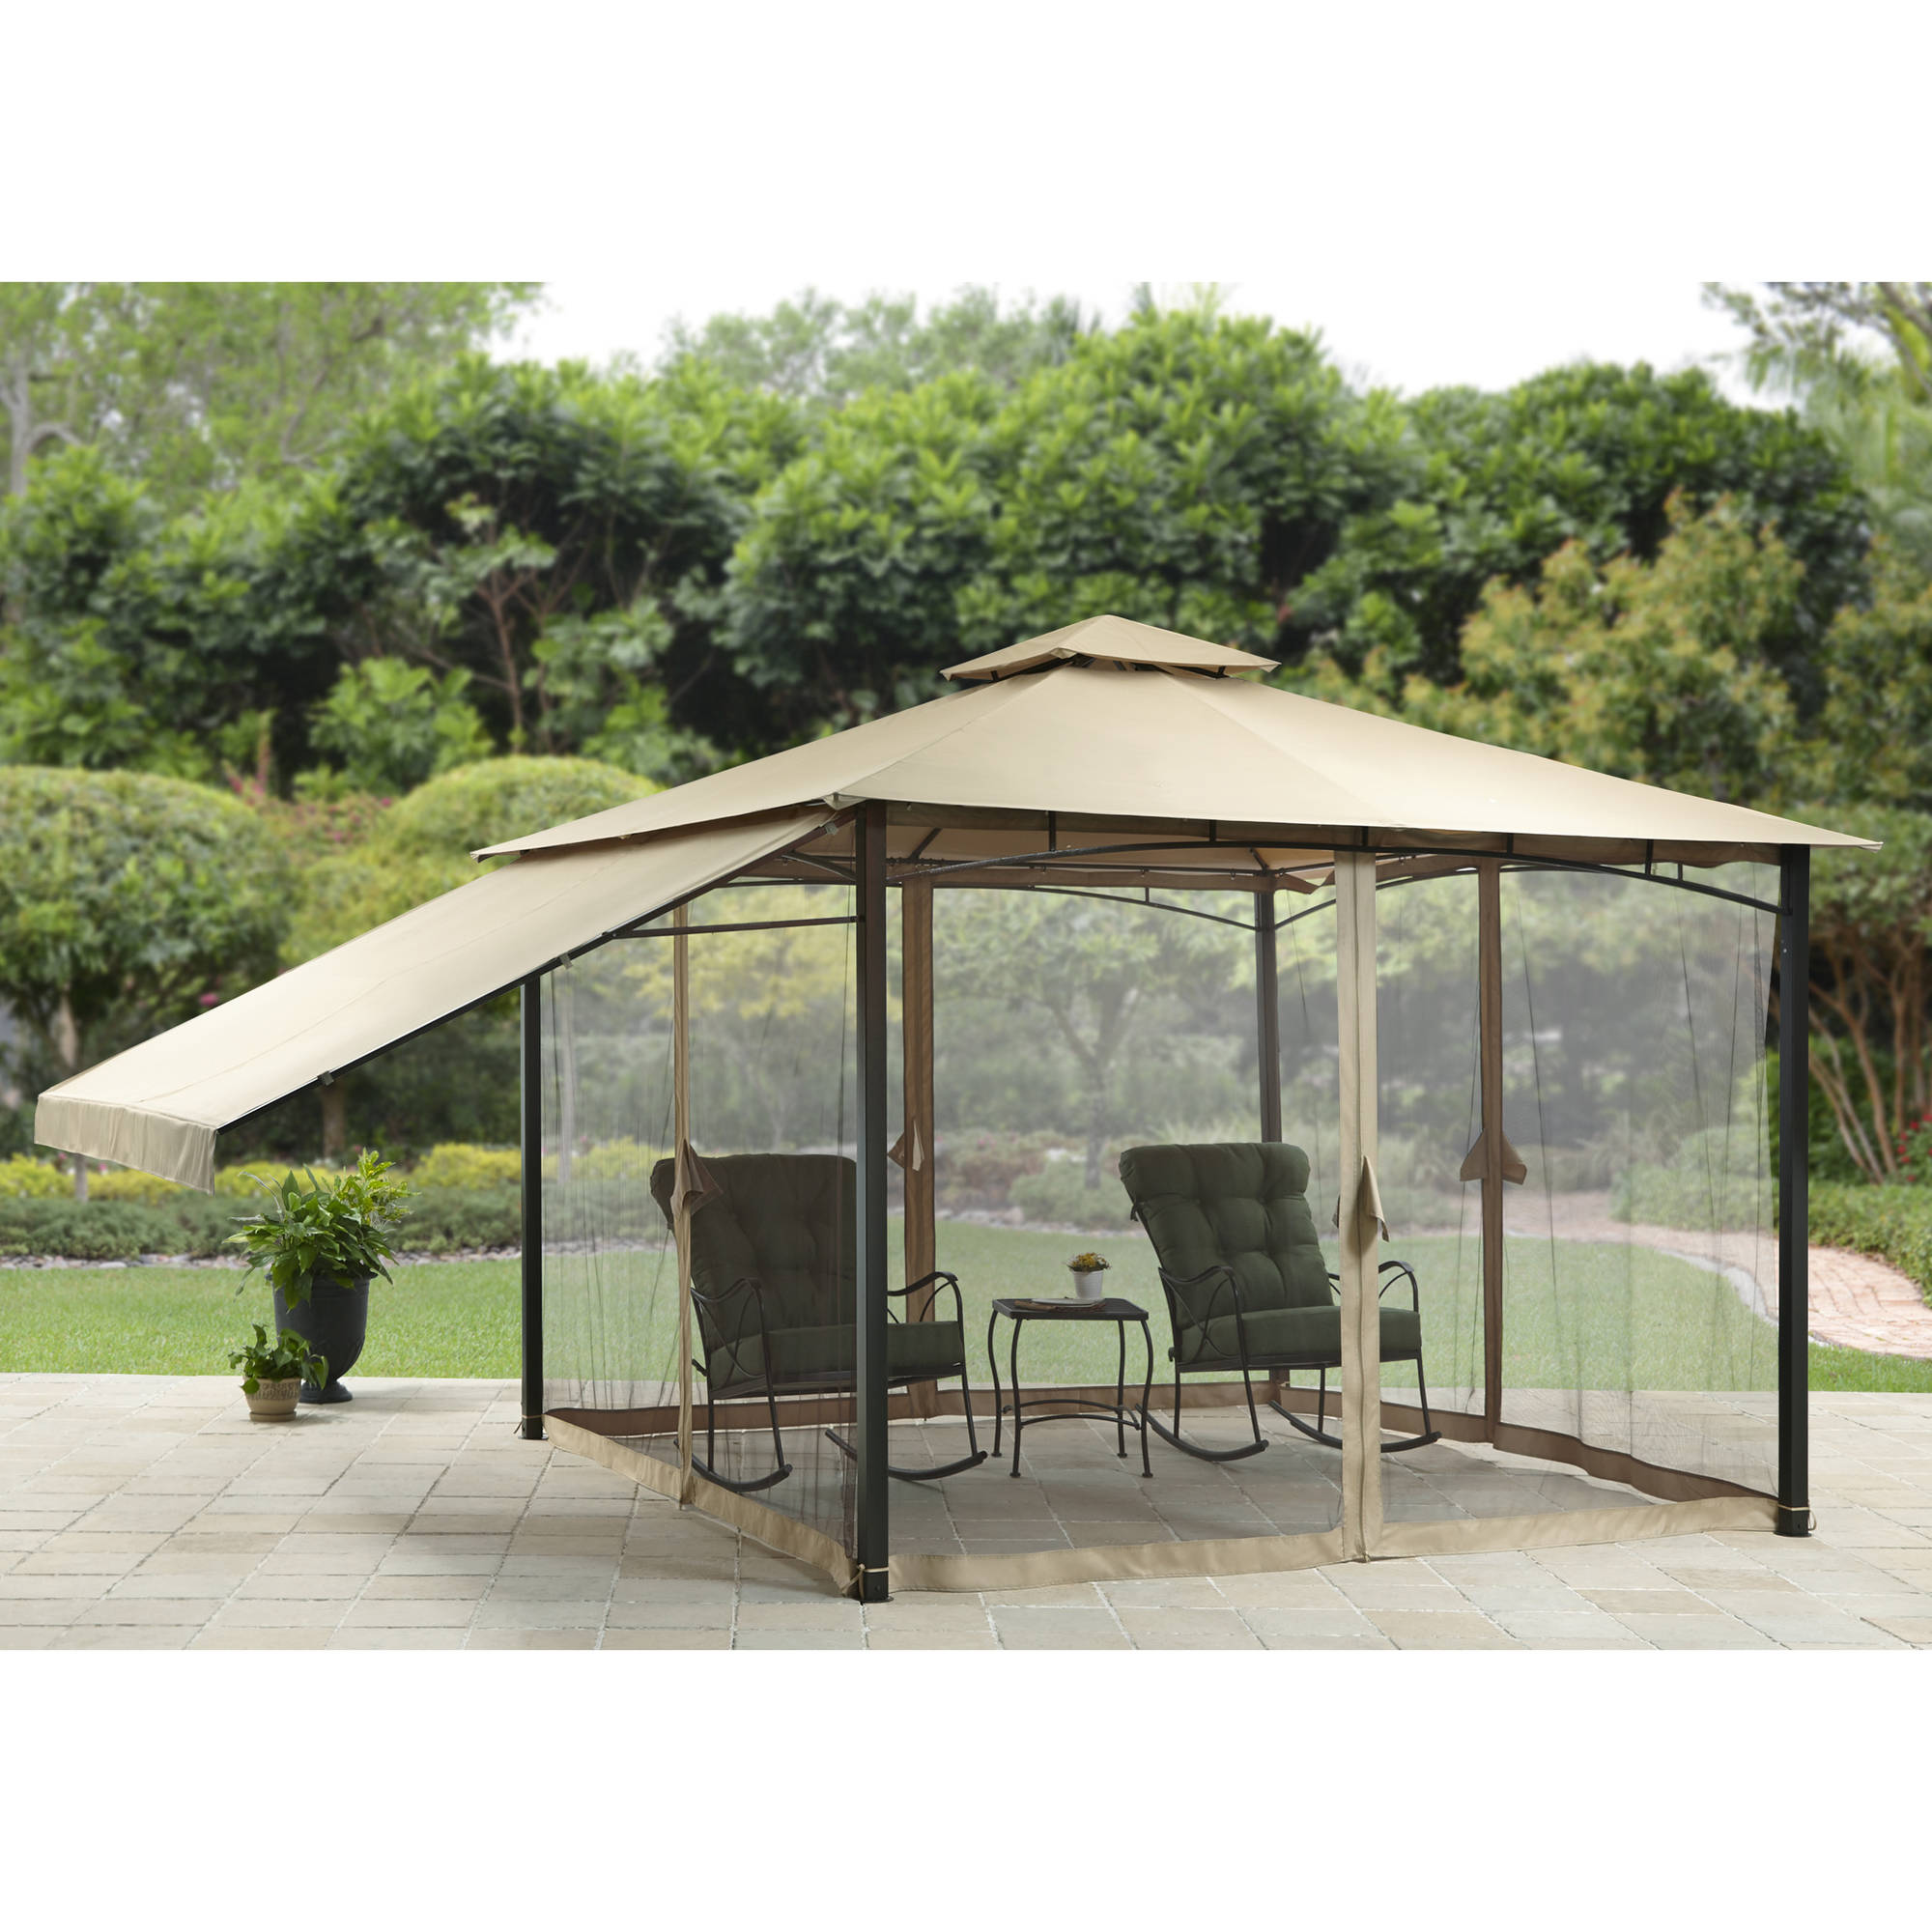 Better Homes and Gardens Canal Drive Cabin-Style Gazebo, 11' x 11'